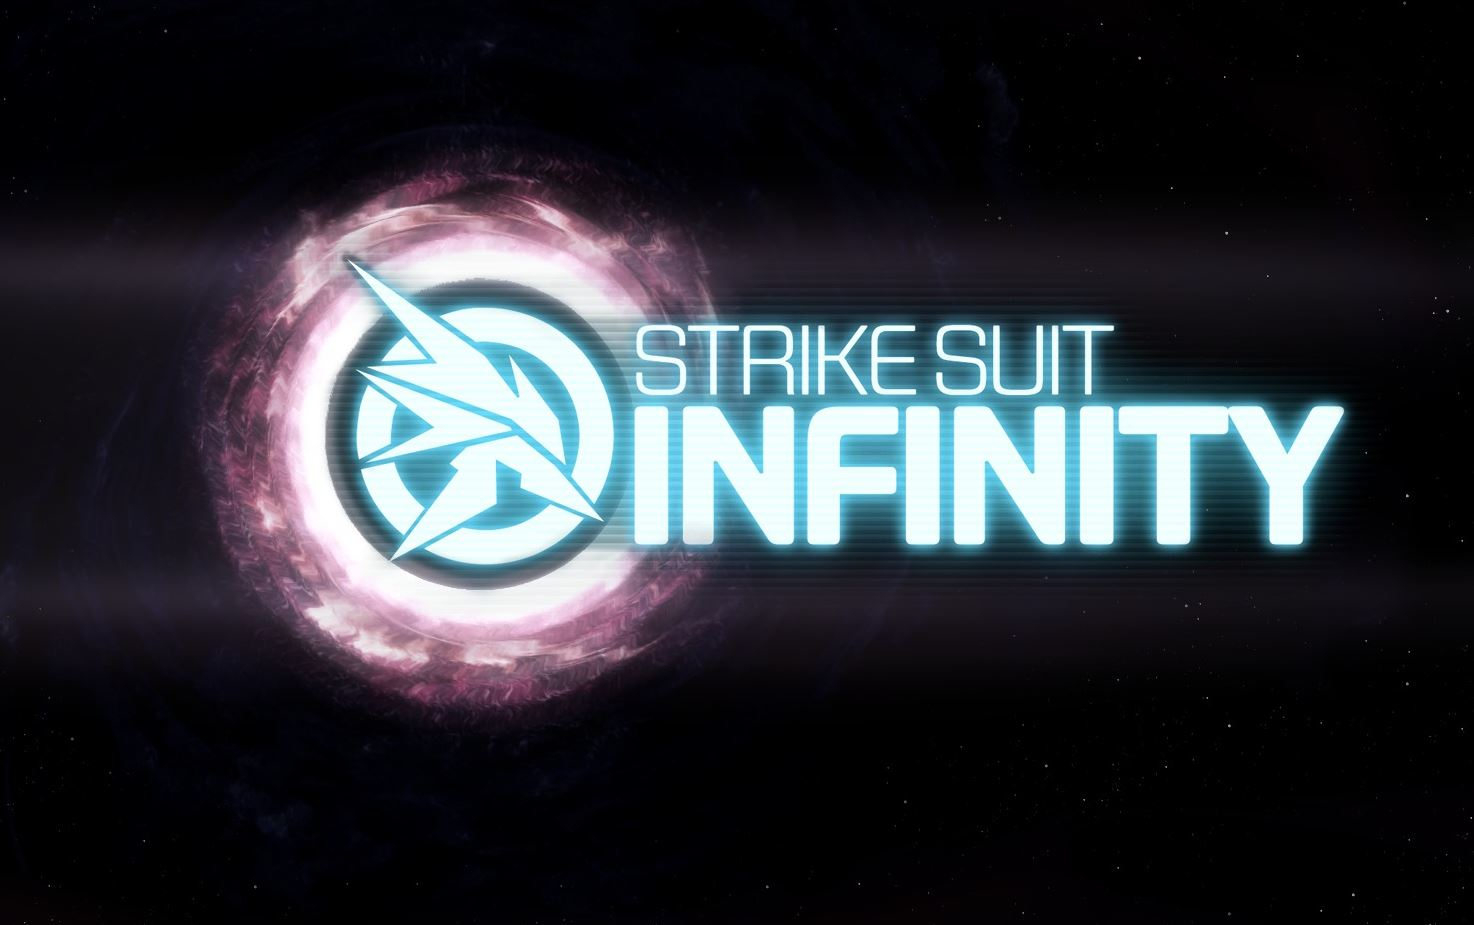 Strike Suit Infinity offers an exciting space shooter with a somewhat frustrating learning curve.